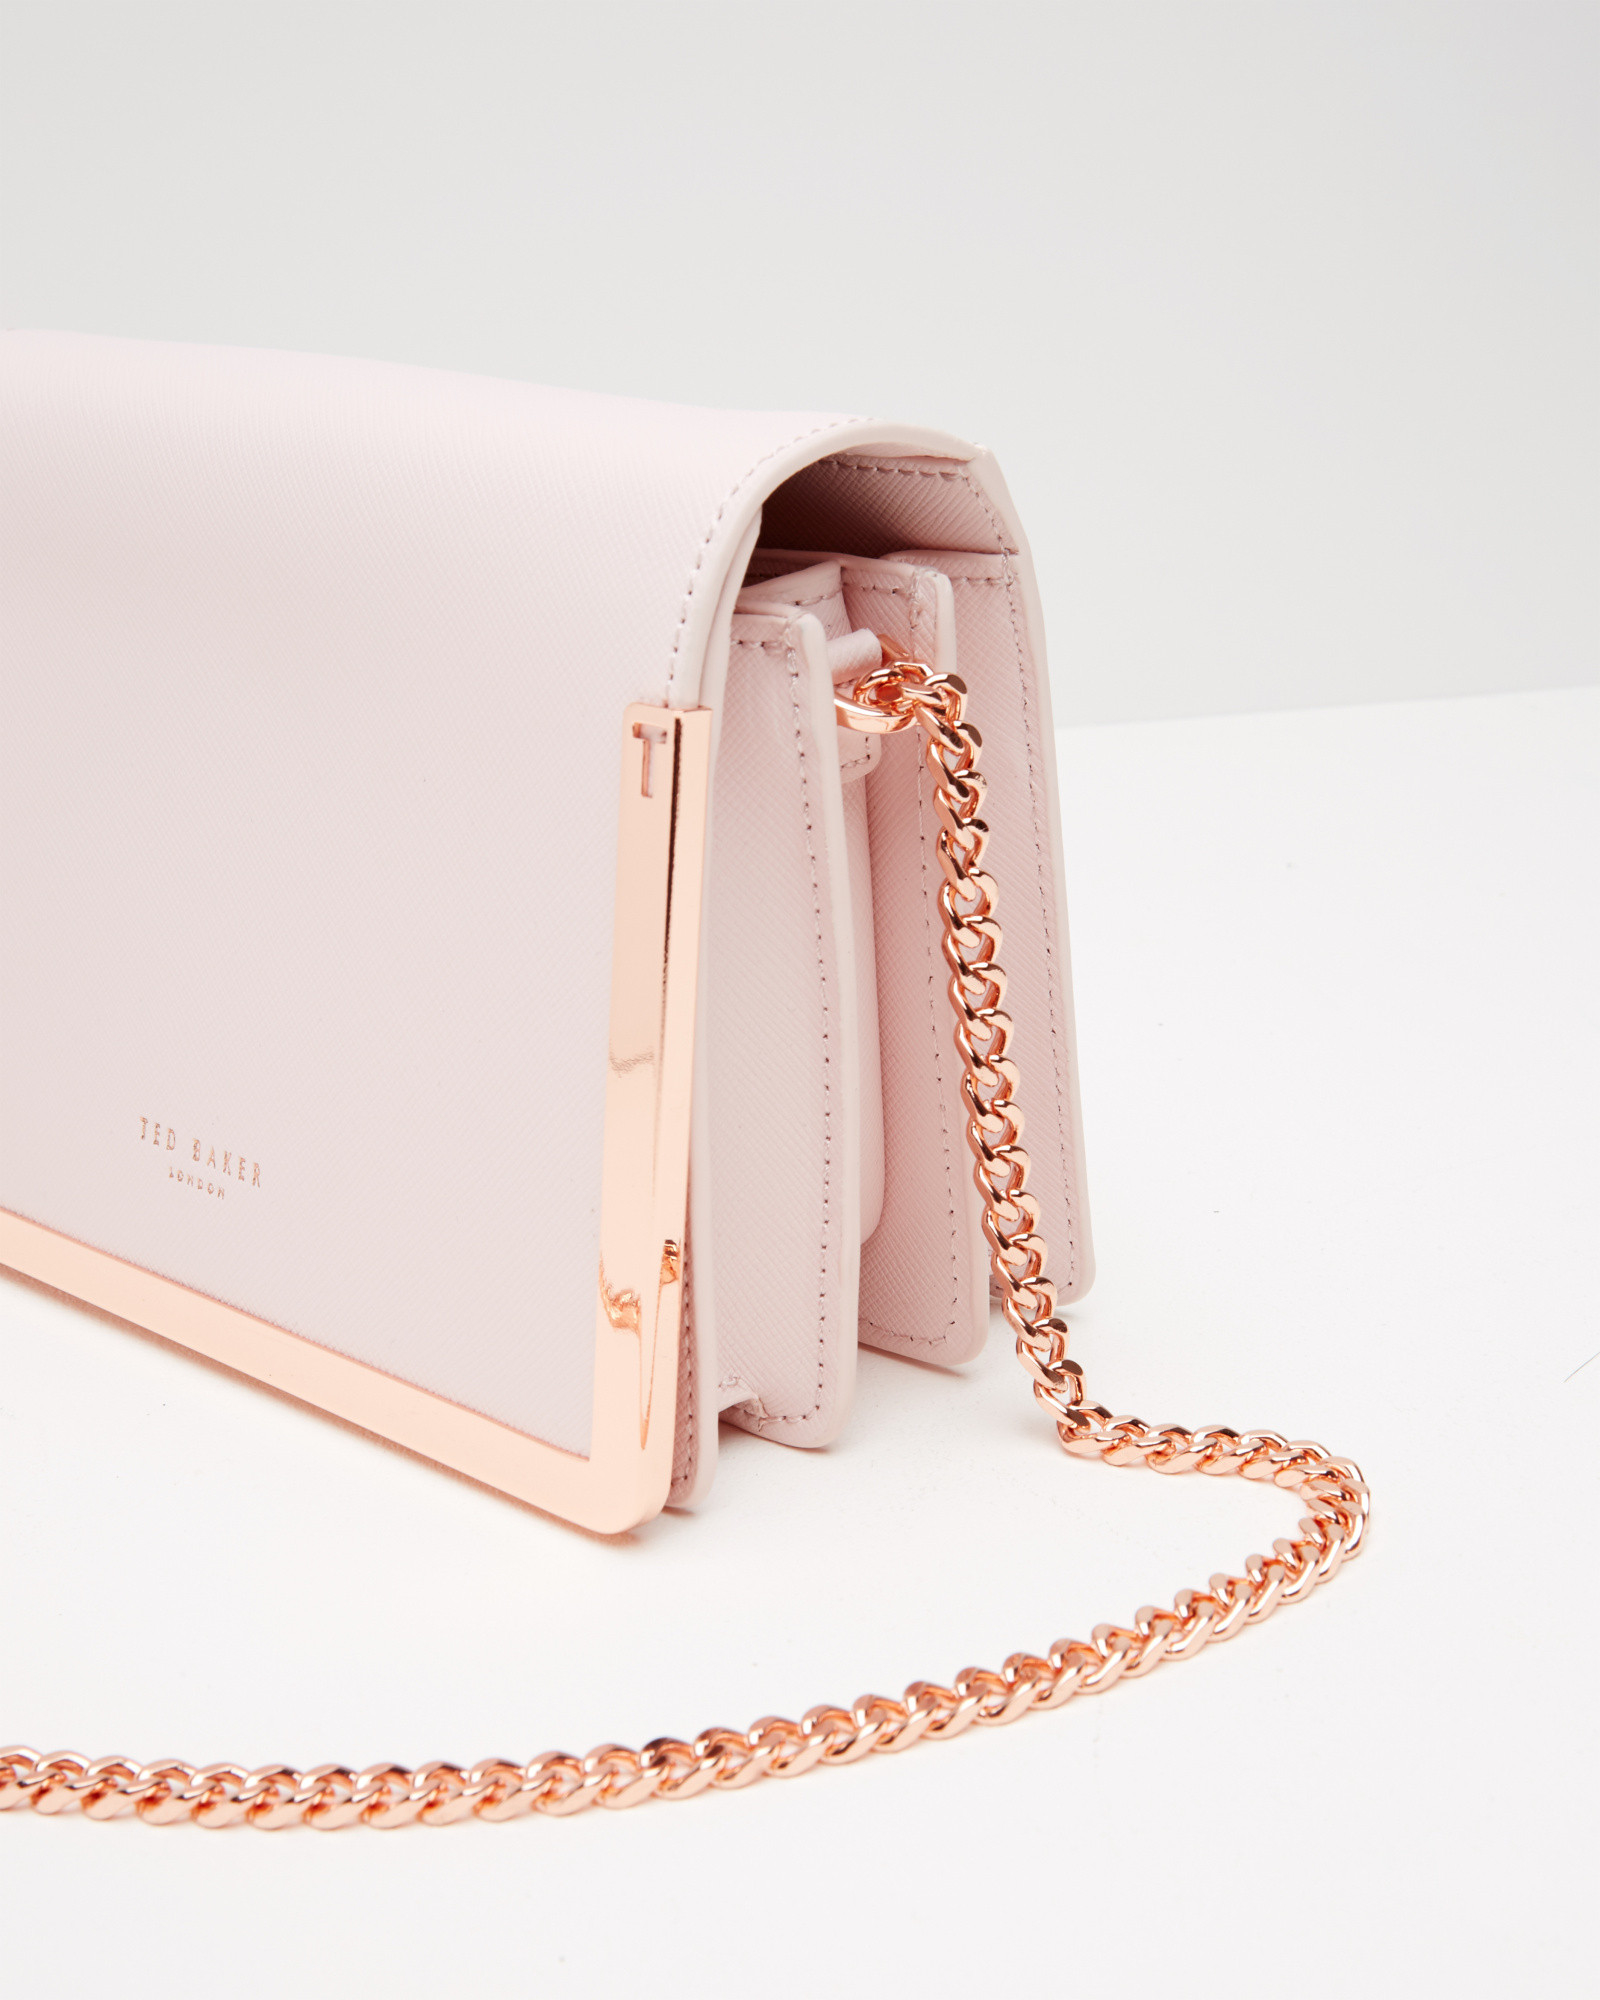 0848b5e03ab Ted Baker Crosshatch Leather Cross Body Bag in Pink - Lyst